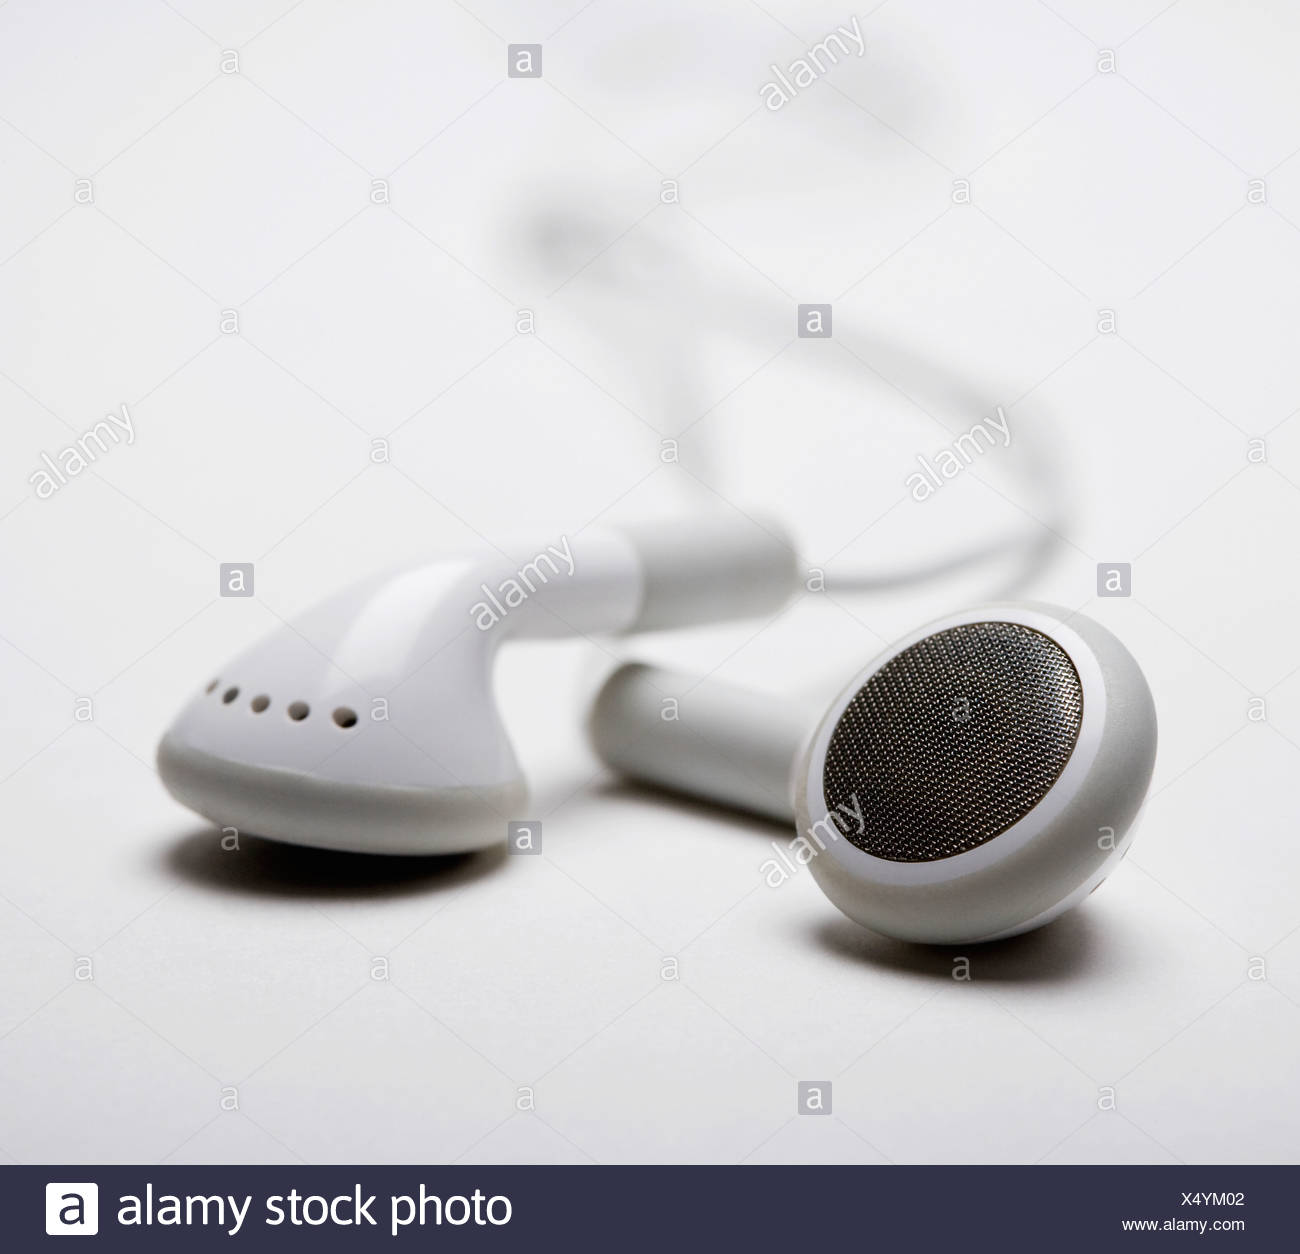 Close up of earbuds - Stock Image